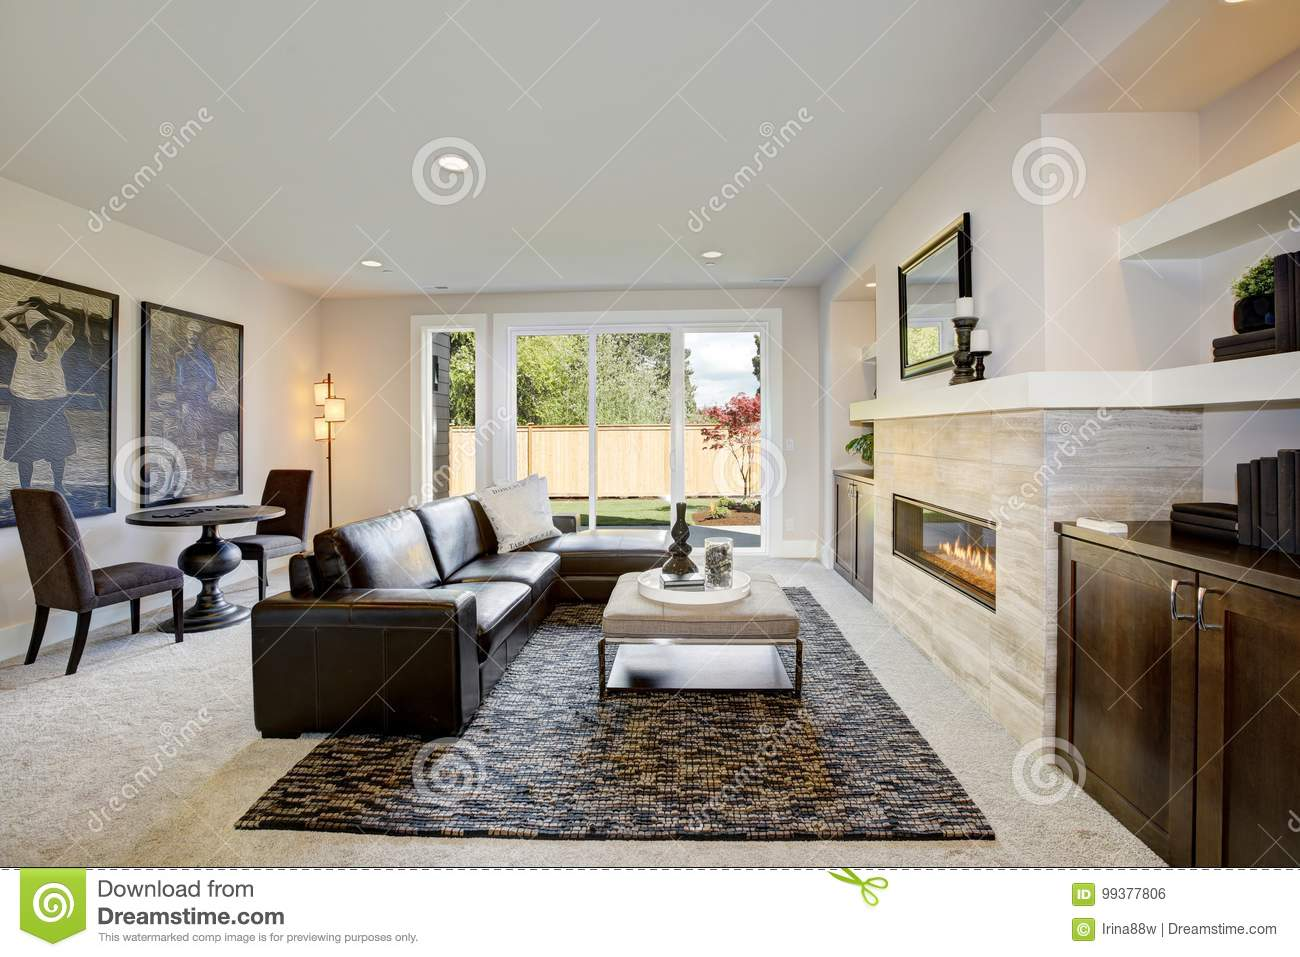 Family Room Design With Wet Bar Nook Stock Photo Image Of Architecture Brown 99377806